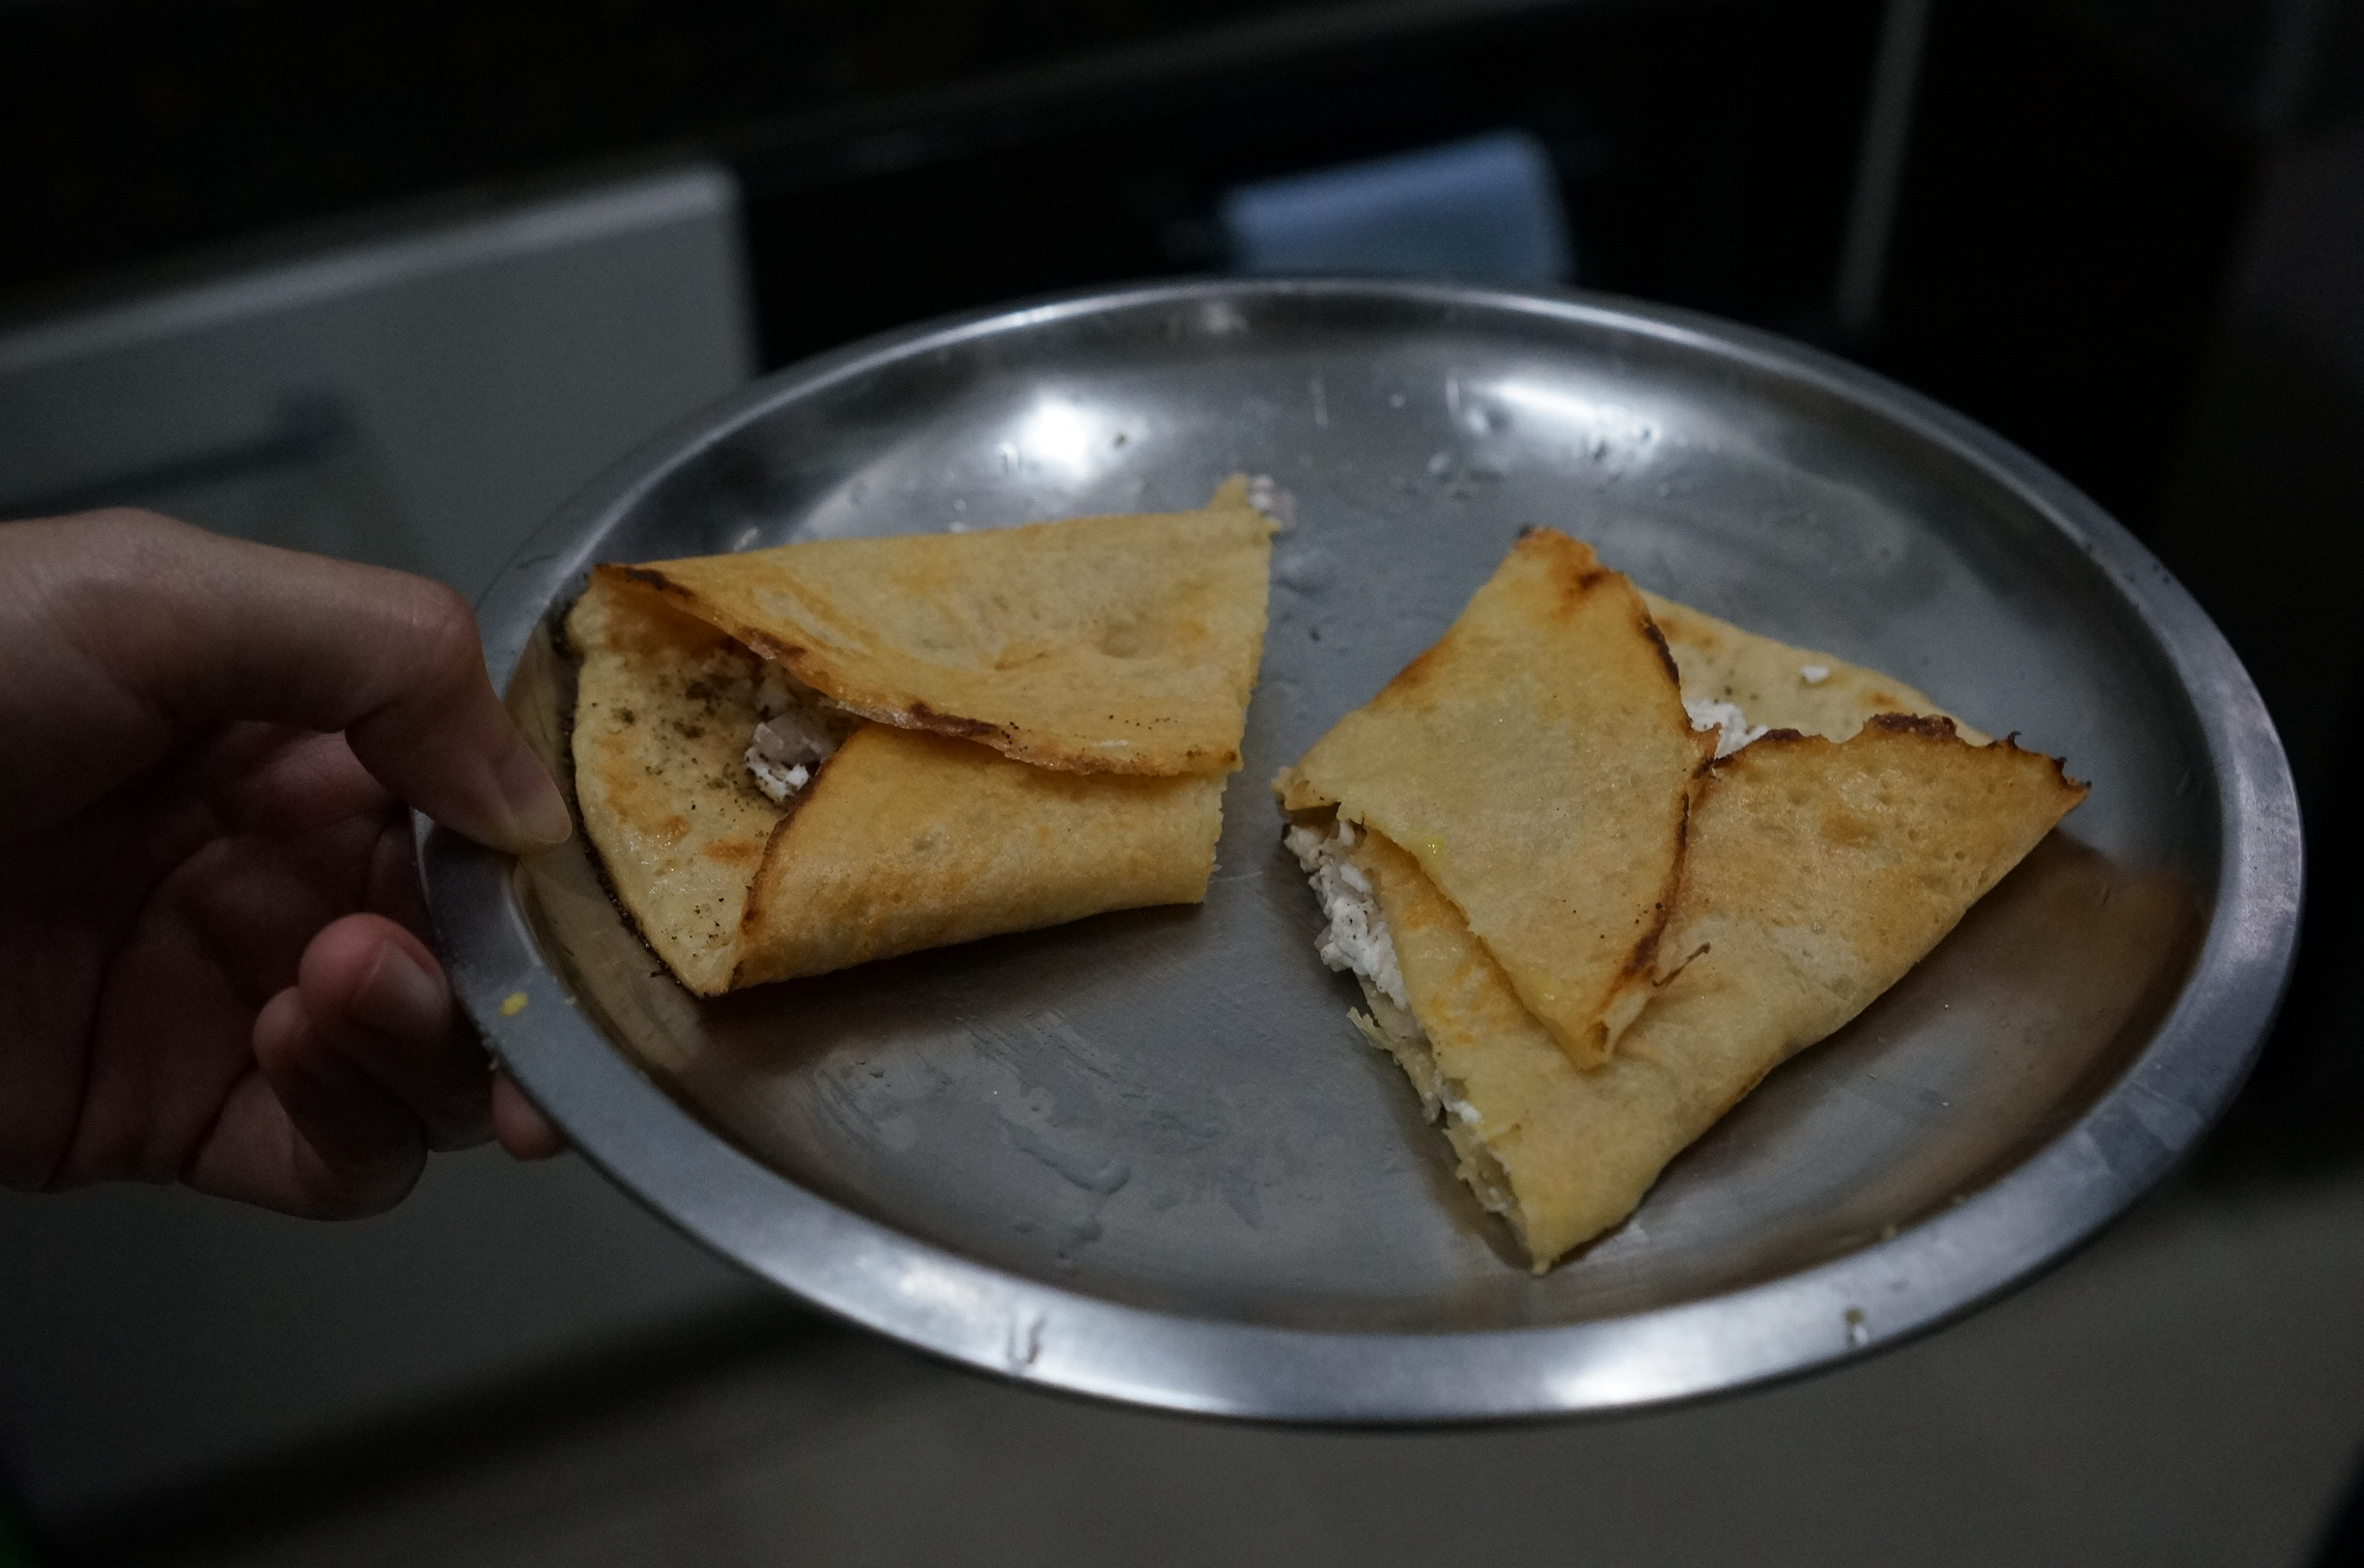 Chila - Indian pancake which usually served for breakfast. The batter was made from moong dal and this one stuffed with cottage cheese.